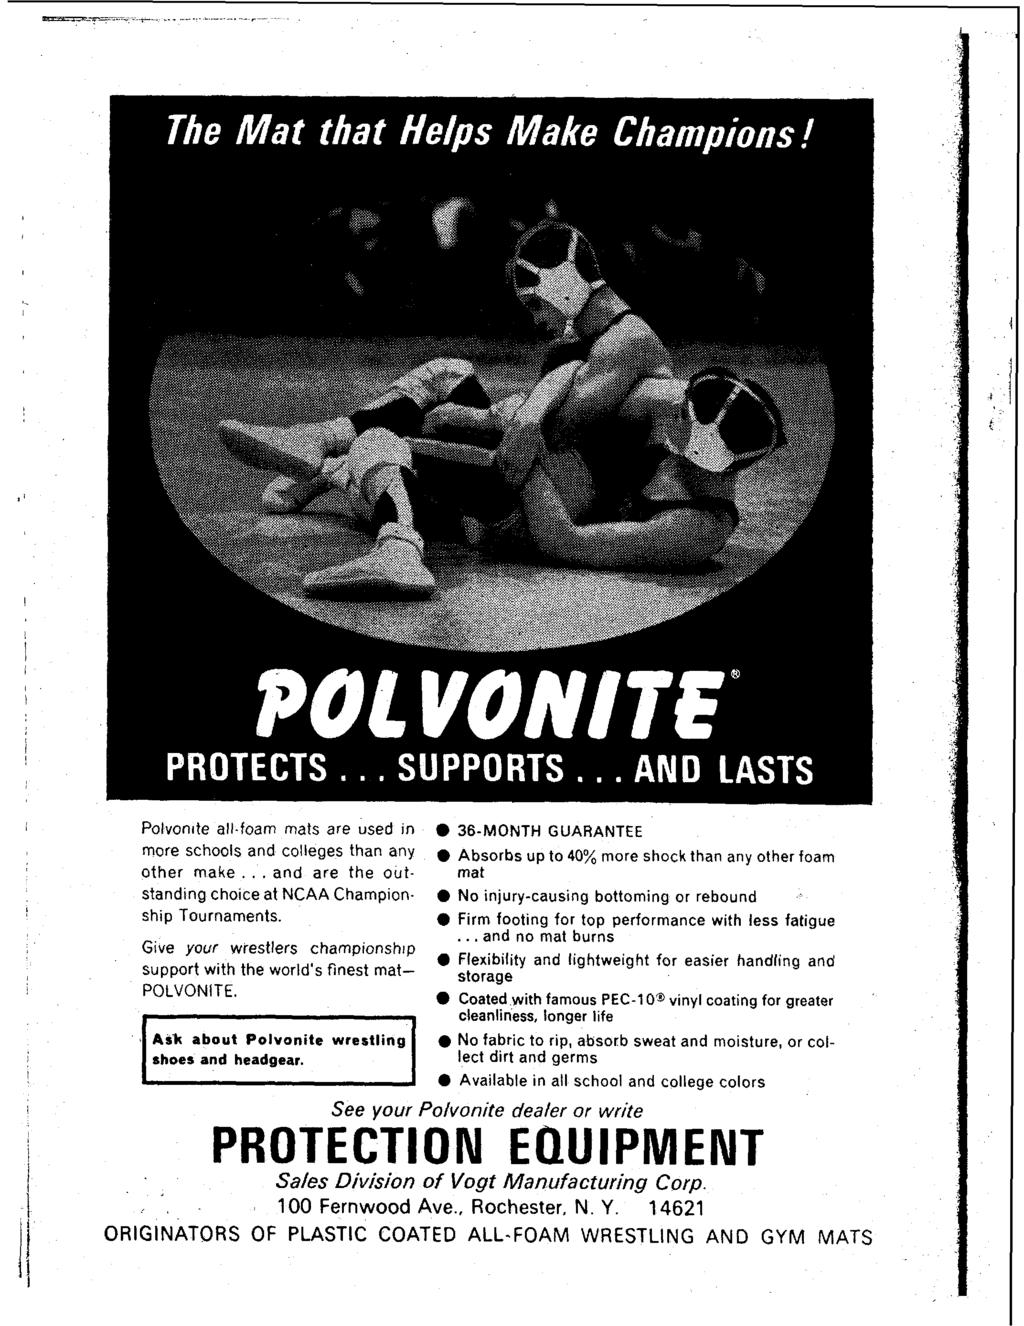 Polvon~te all.foam mats are used In more schools and colleges than any other make... and are the out- stand~ng choce at NCAA Championshlp Tournaments.